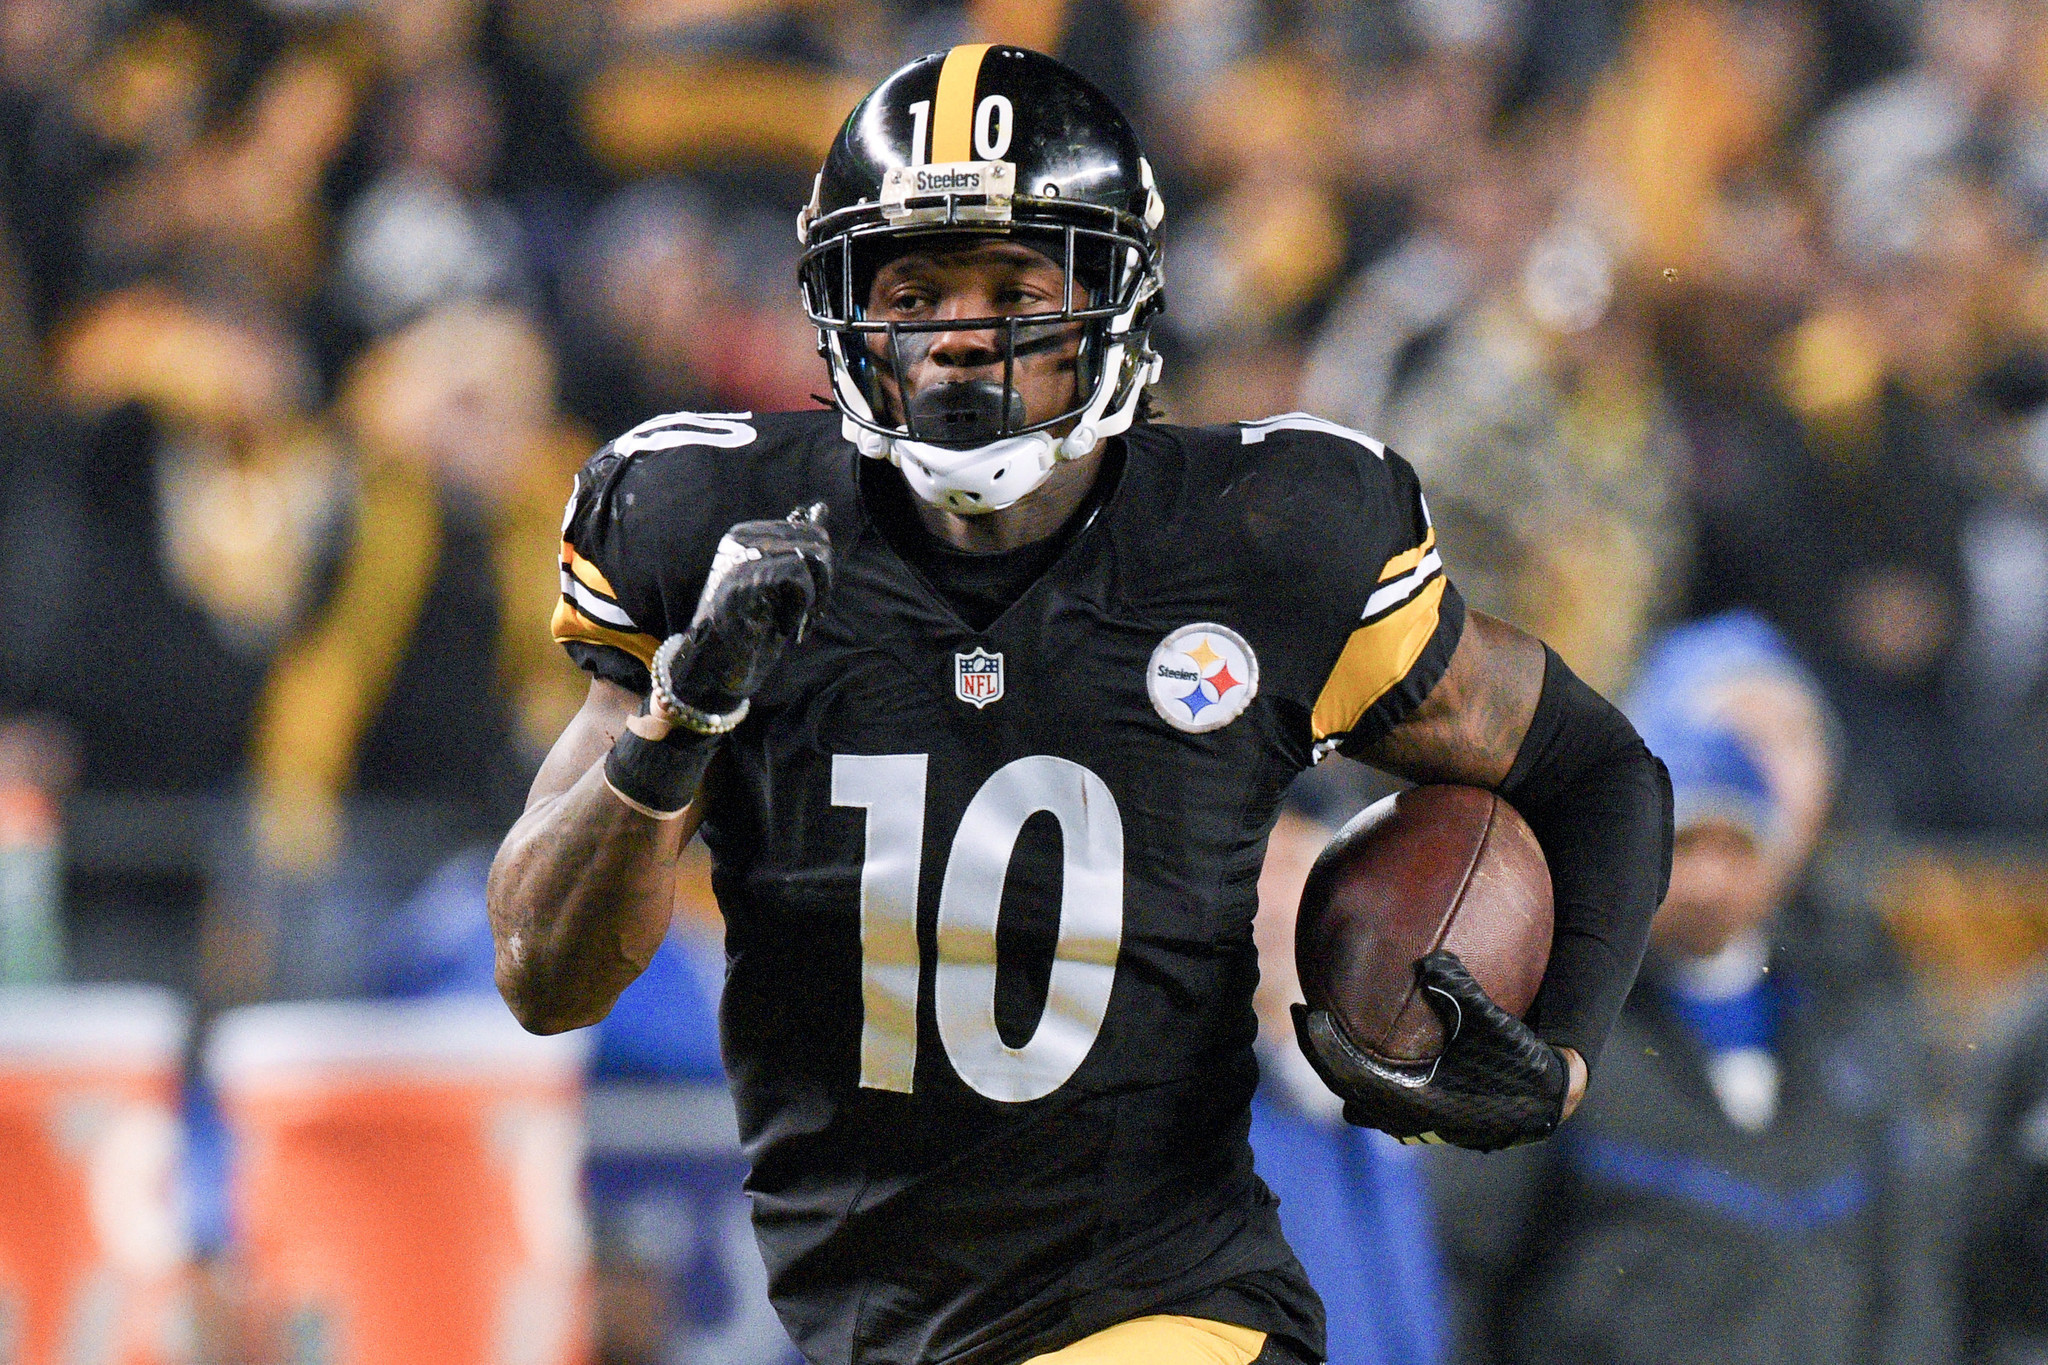 Steelers receiver Martavis Bryant is suspended for at least a year